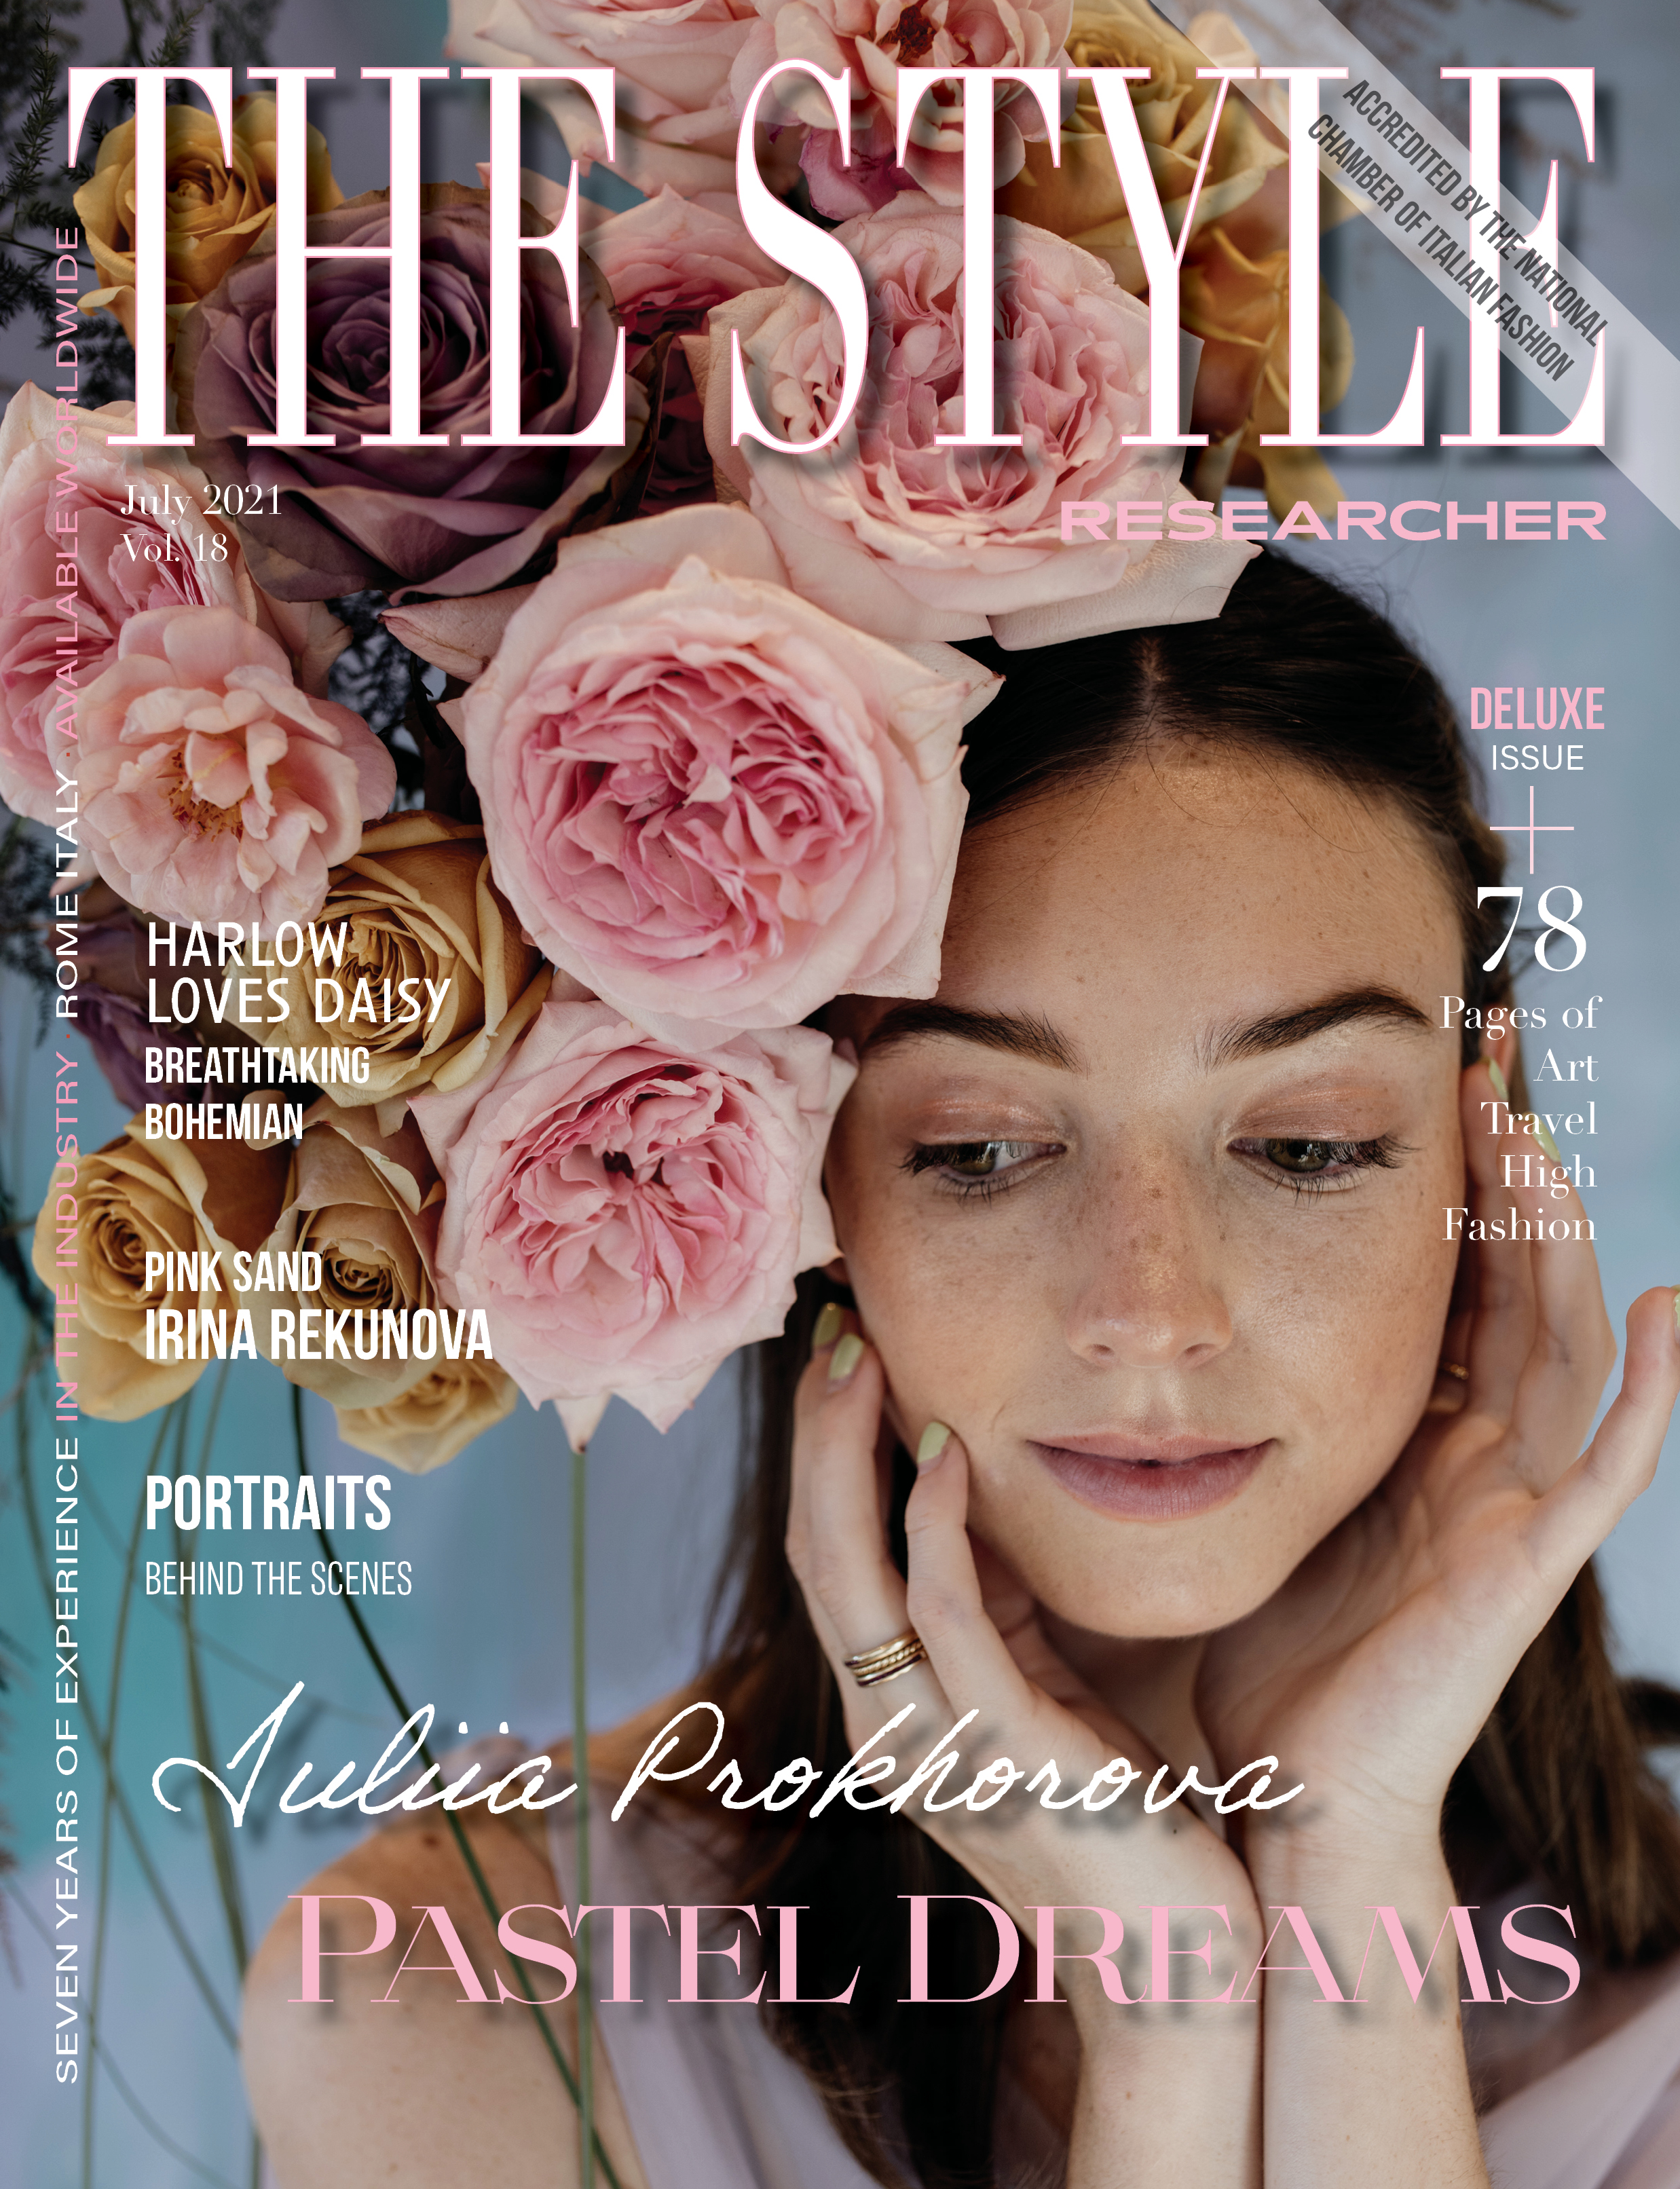 The Style Researcher Vol 18 Cover